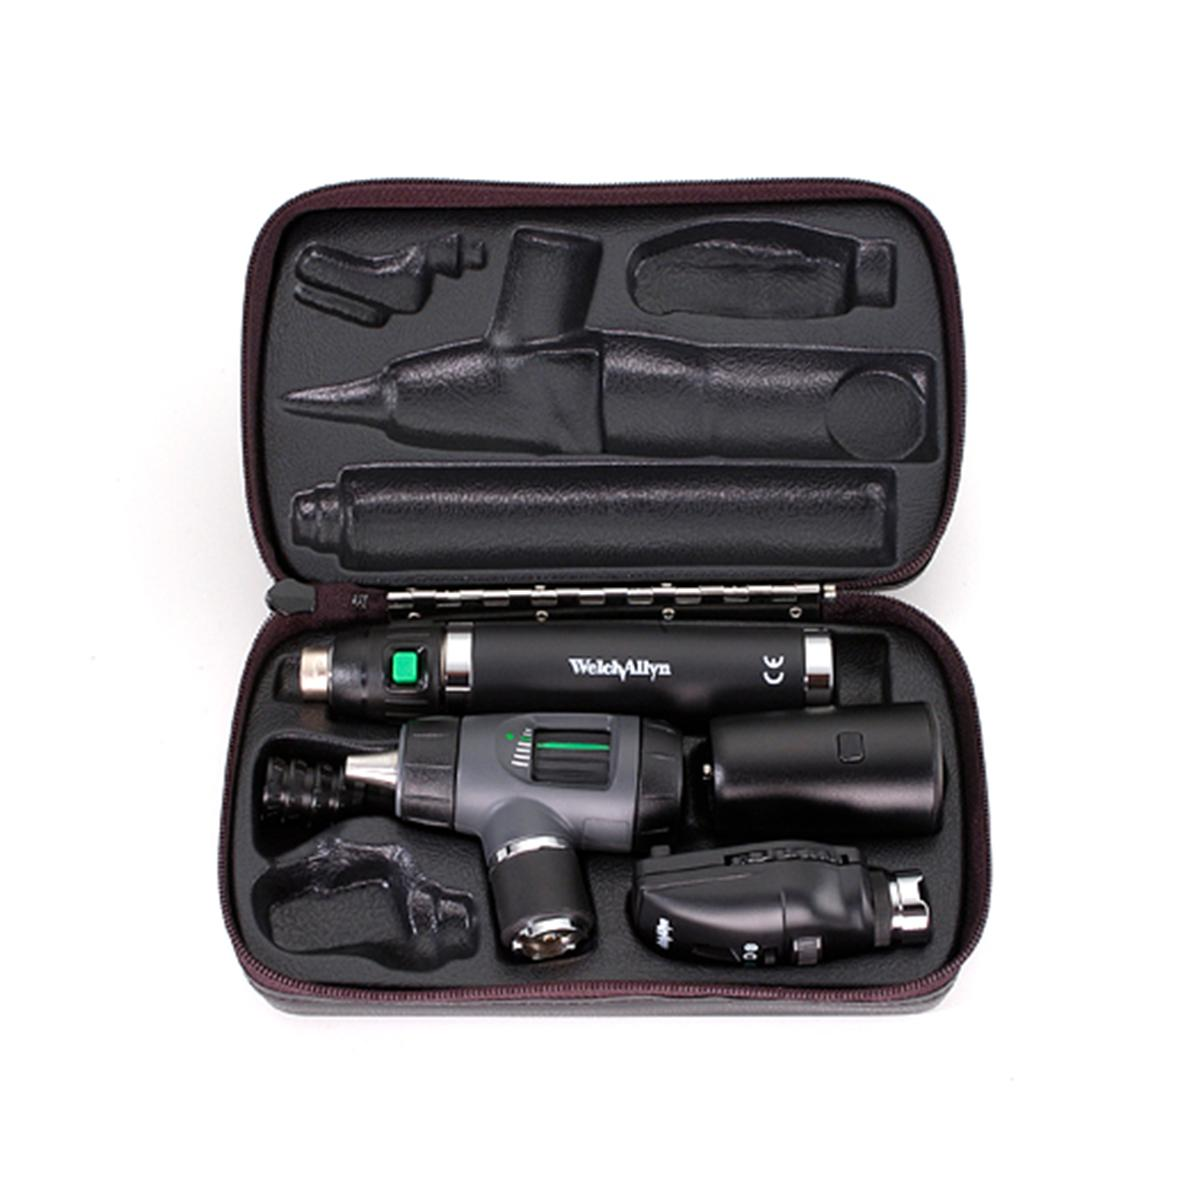 Otoscope Set in storage case